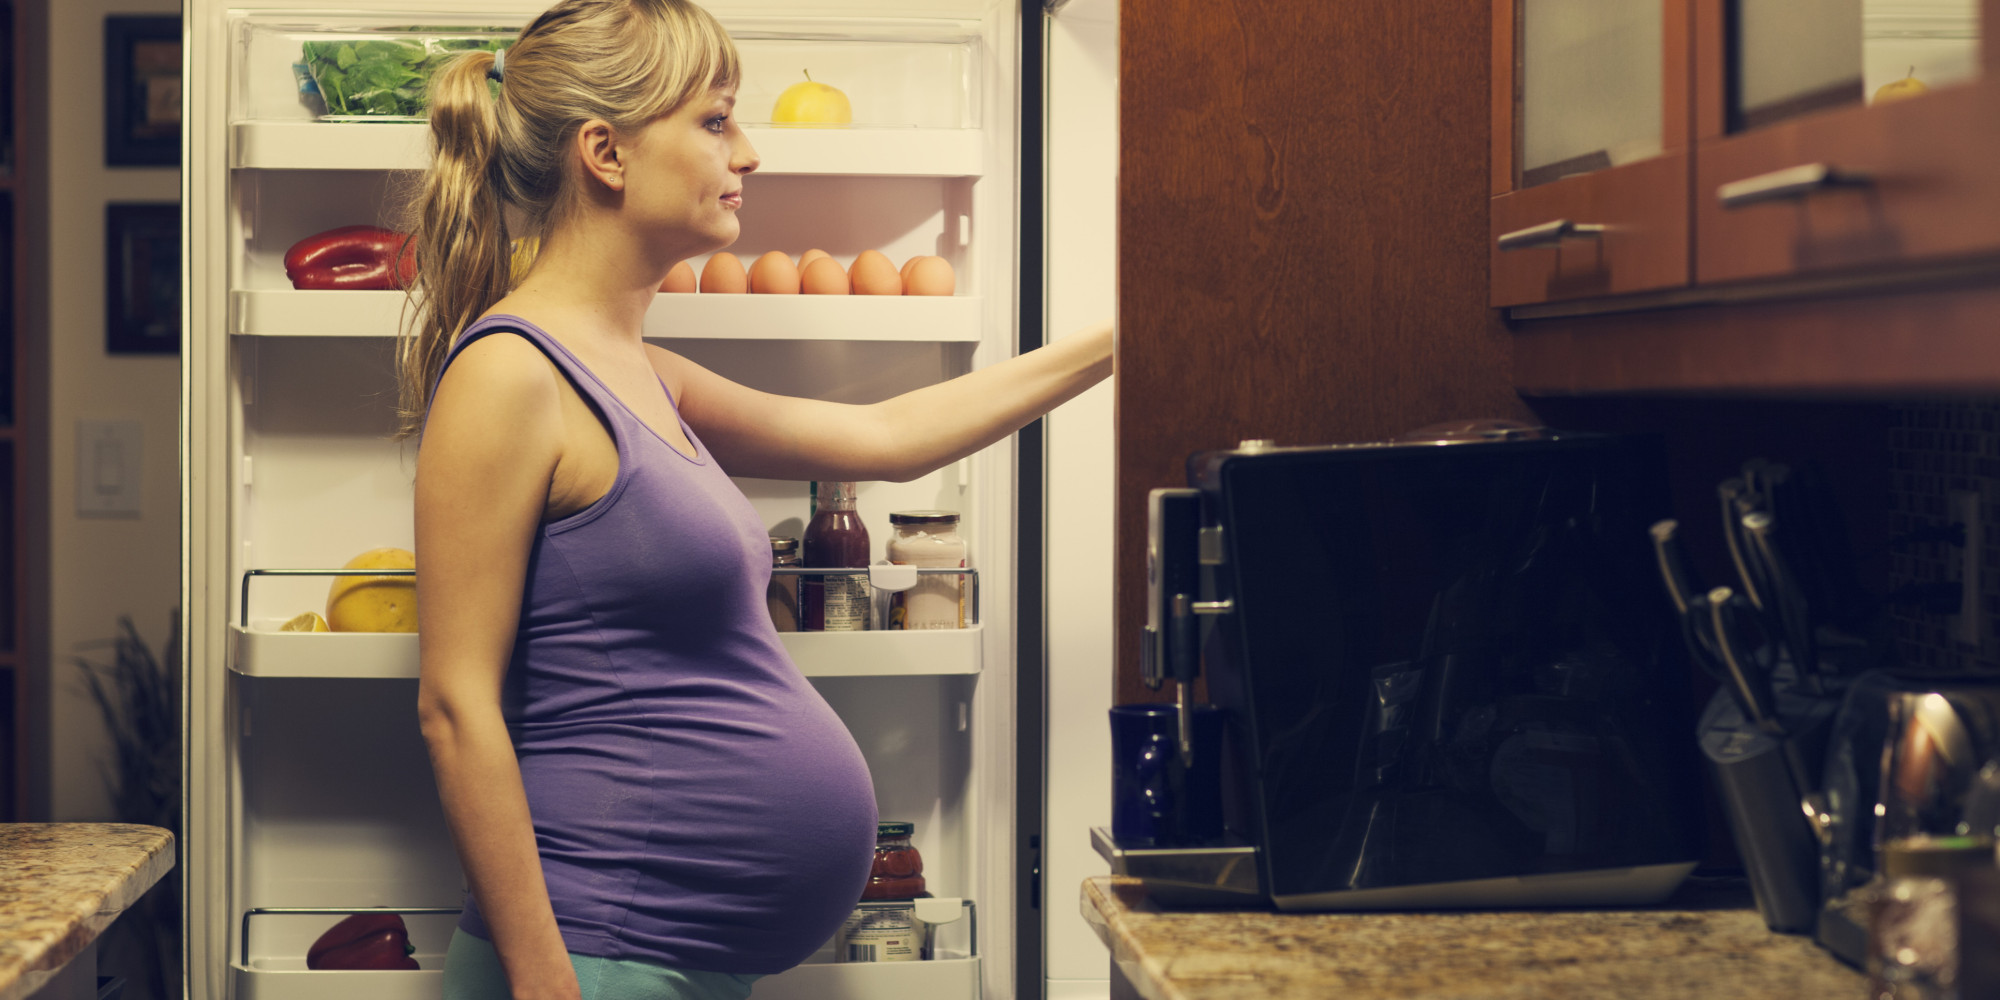 Weird Food A Pregnant Woman Should Eat